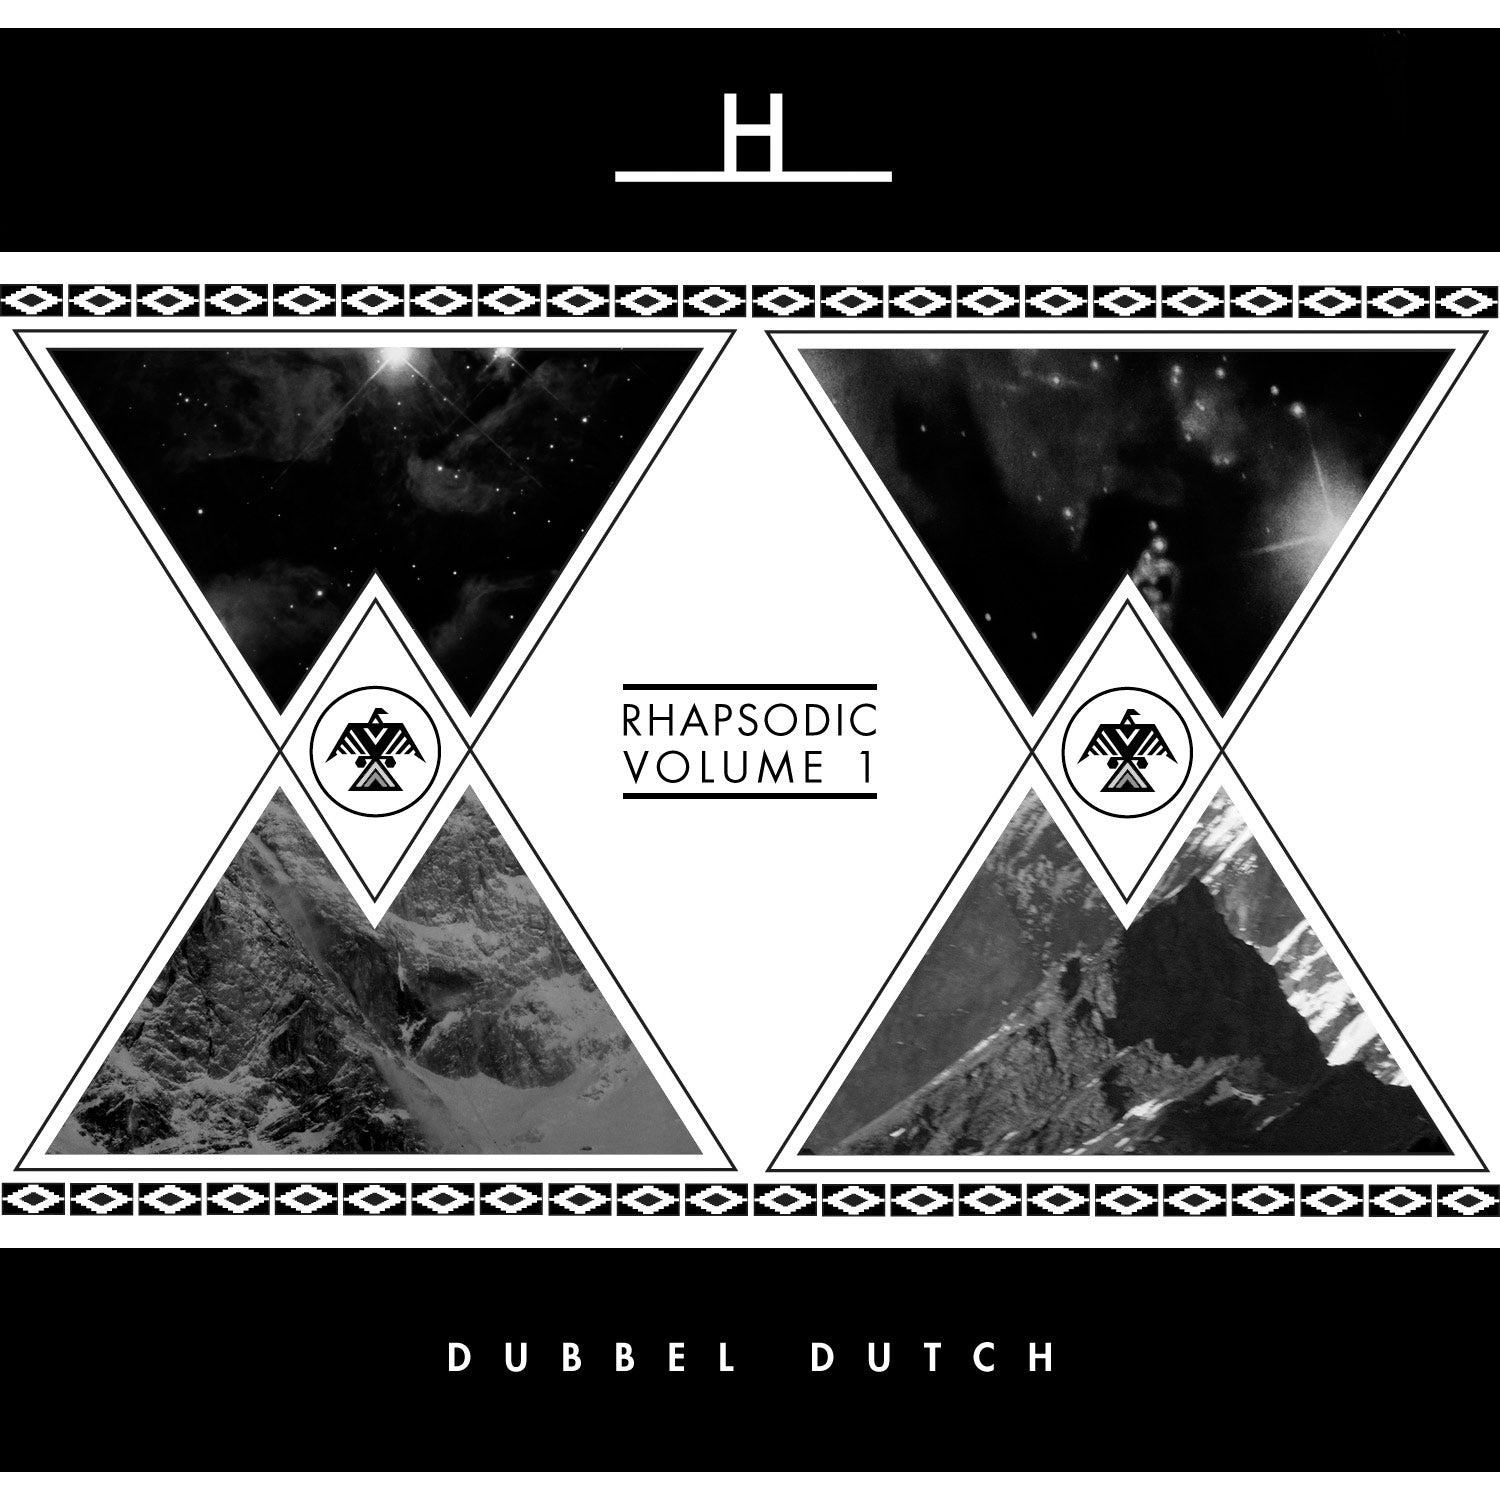 Rhapsodic Vol. I by Dubbel Dutch